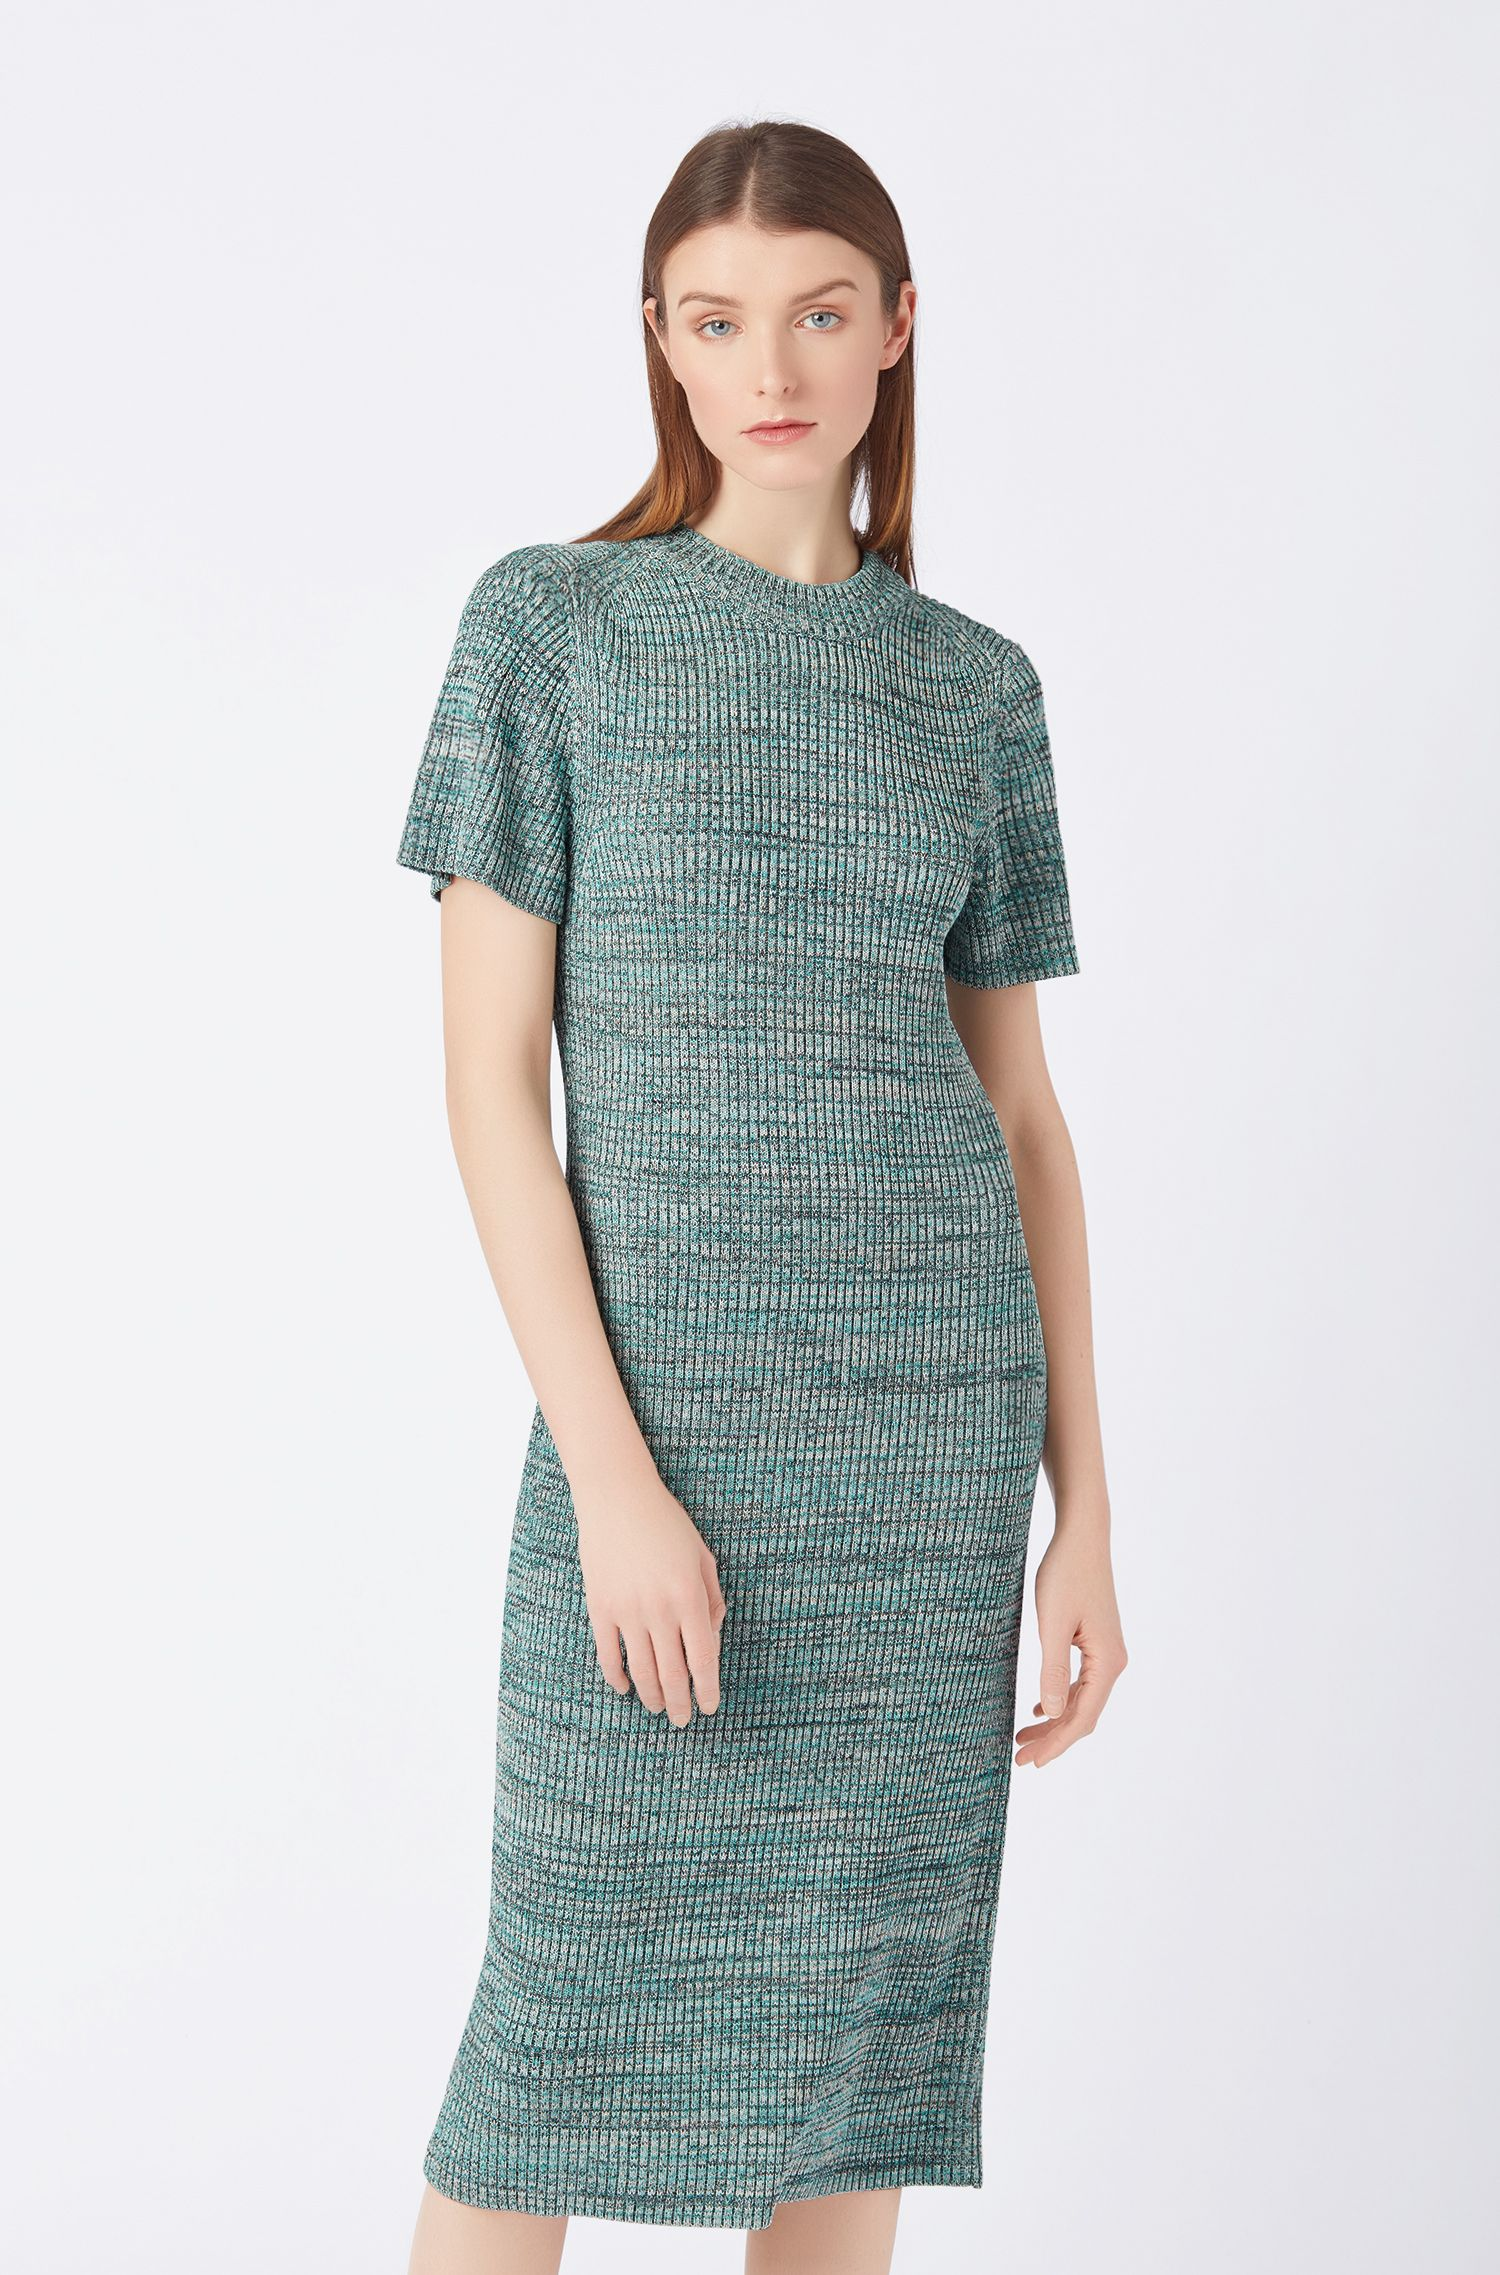 Short-sleeved knitted dress in multicolored mouliné fabric, Patterned